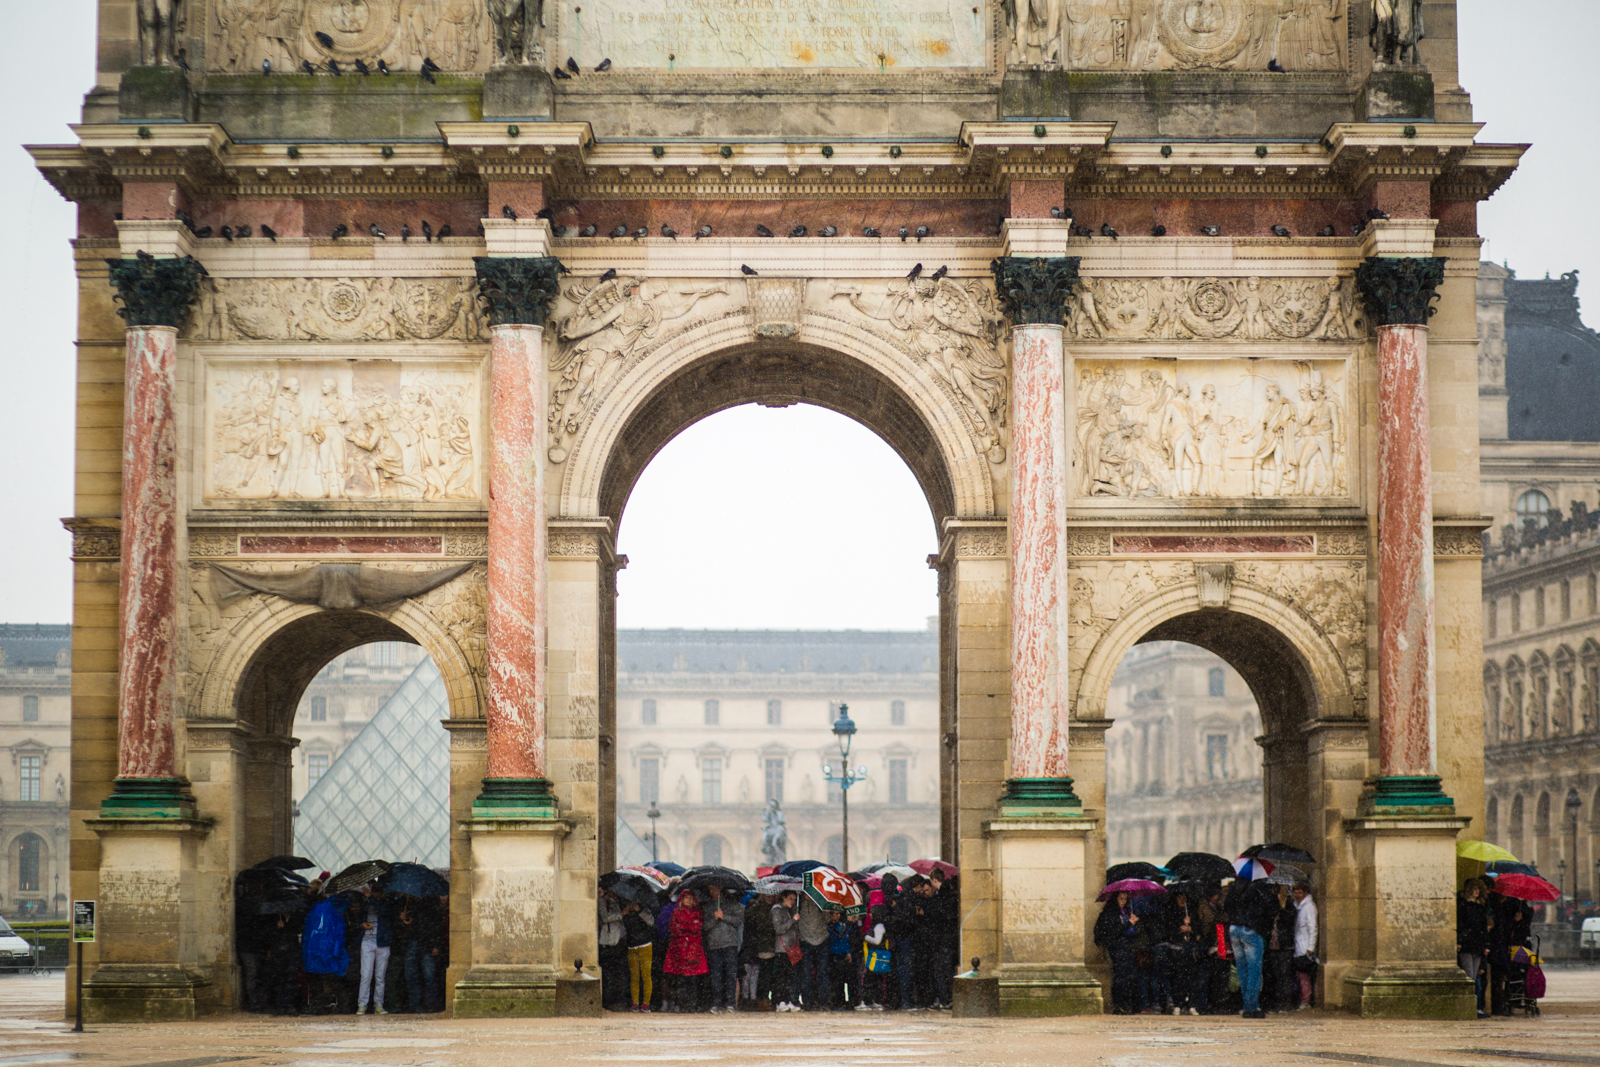 Tourists seeking shelter during a downpour, Arc de Triomphe du Carrousel, Paris